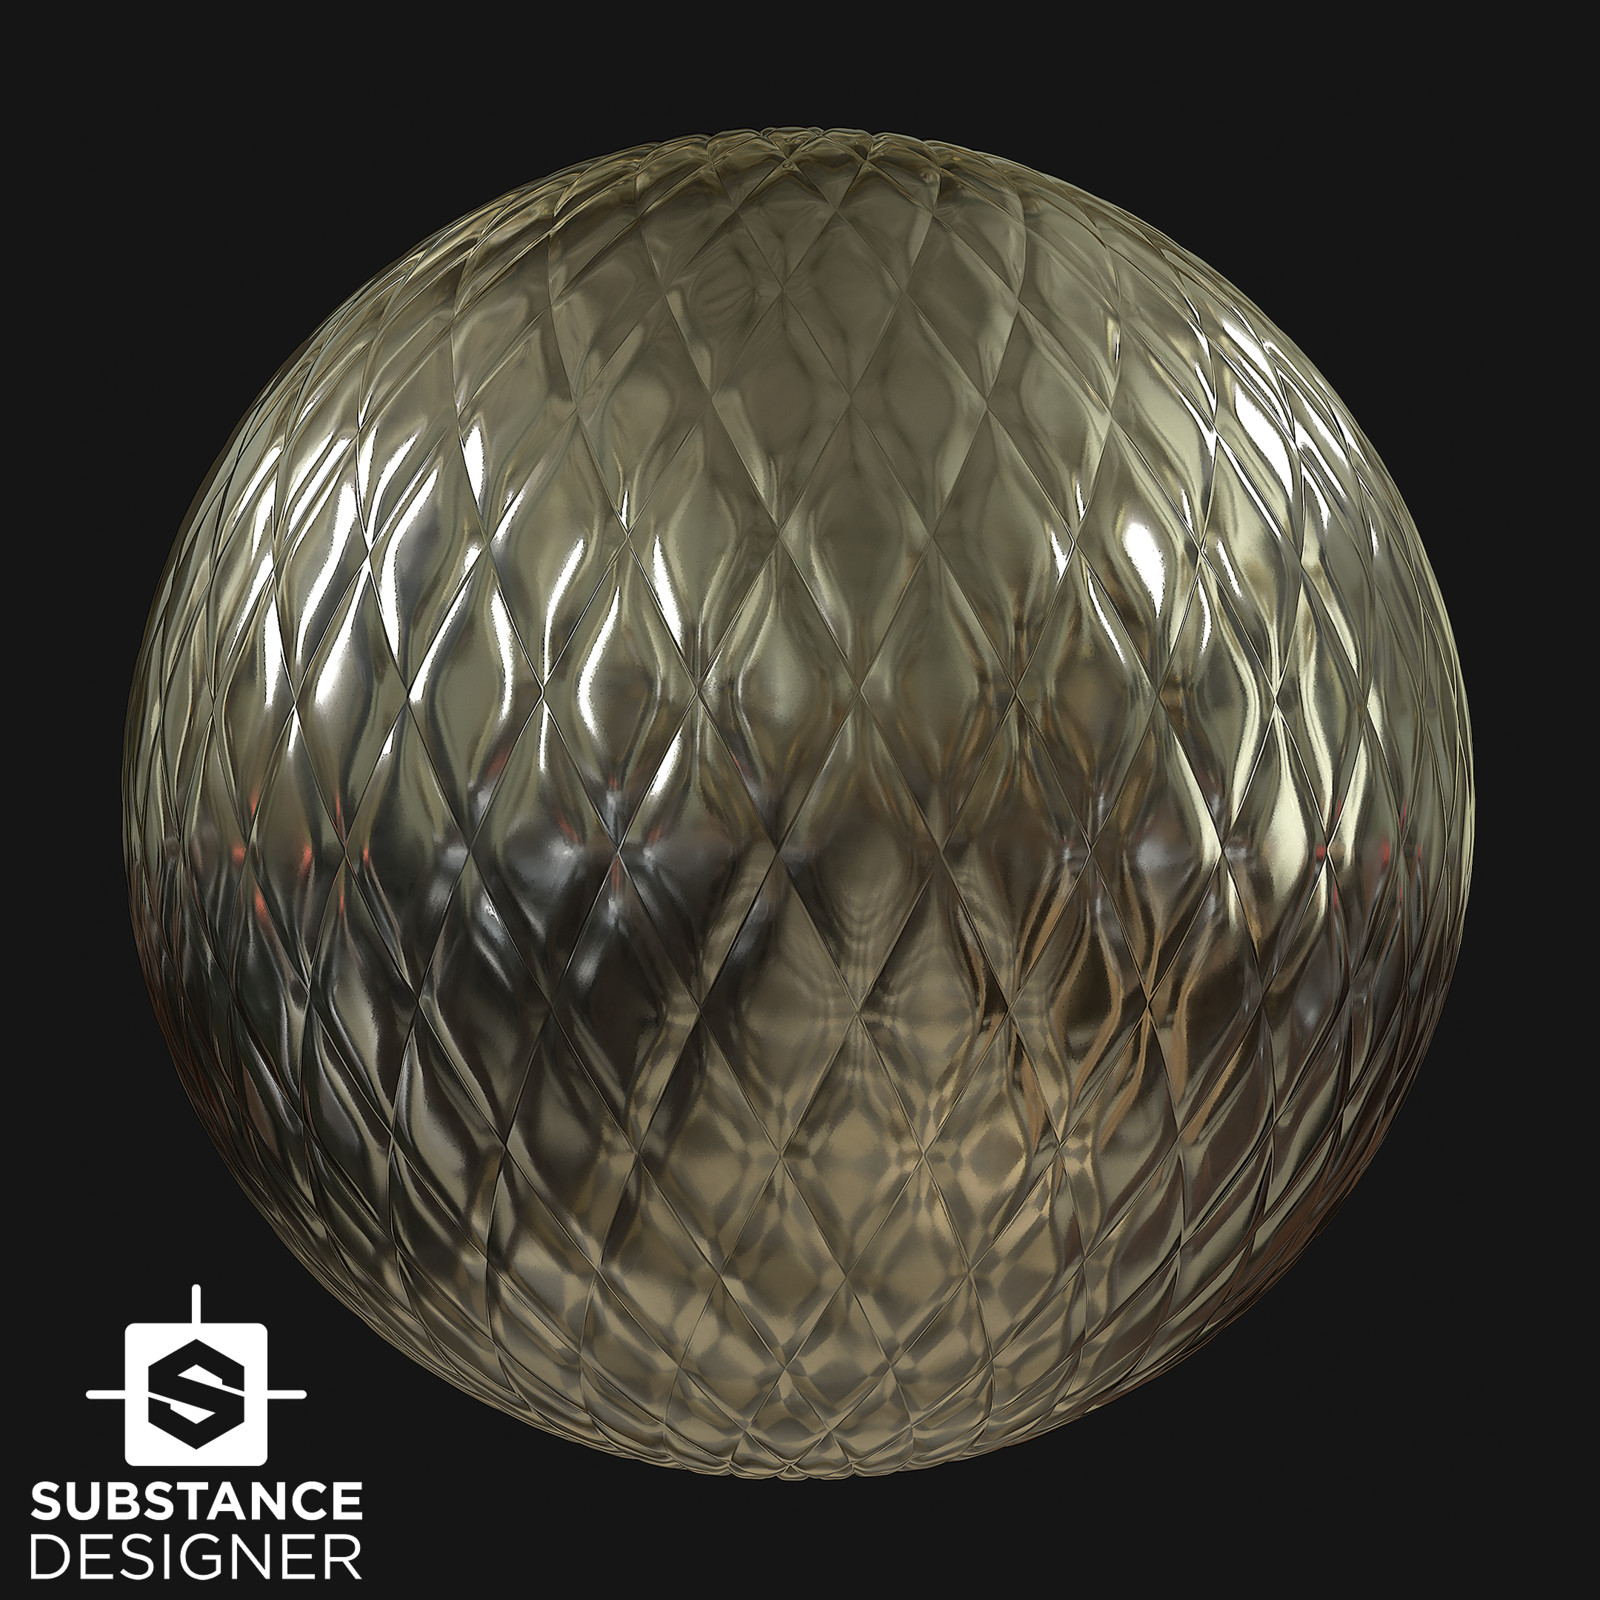 Metal - Diamond Pattern - Substance Designer Material